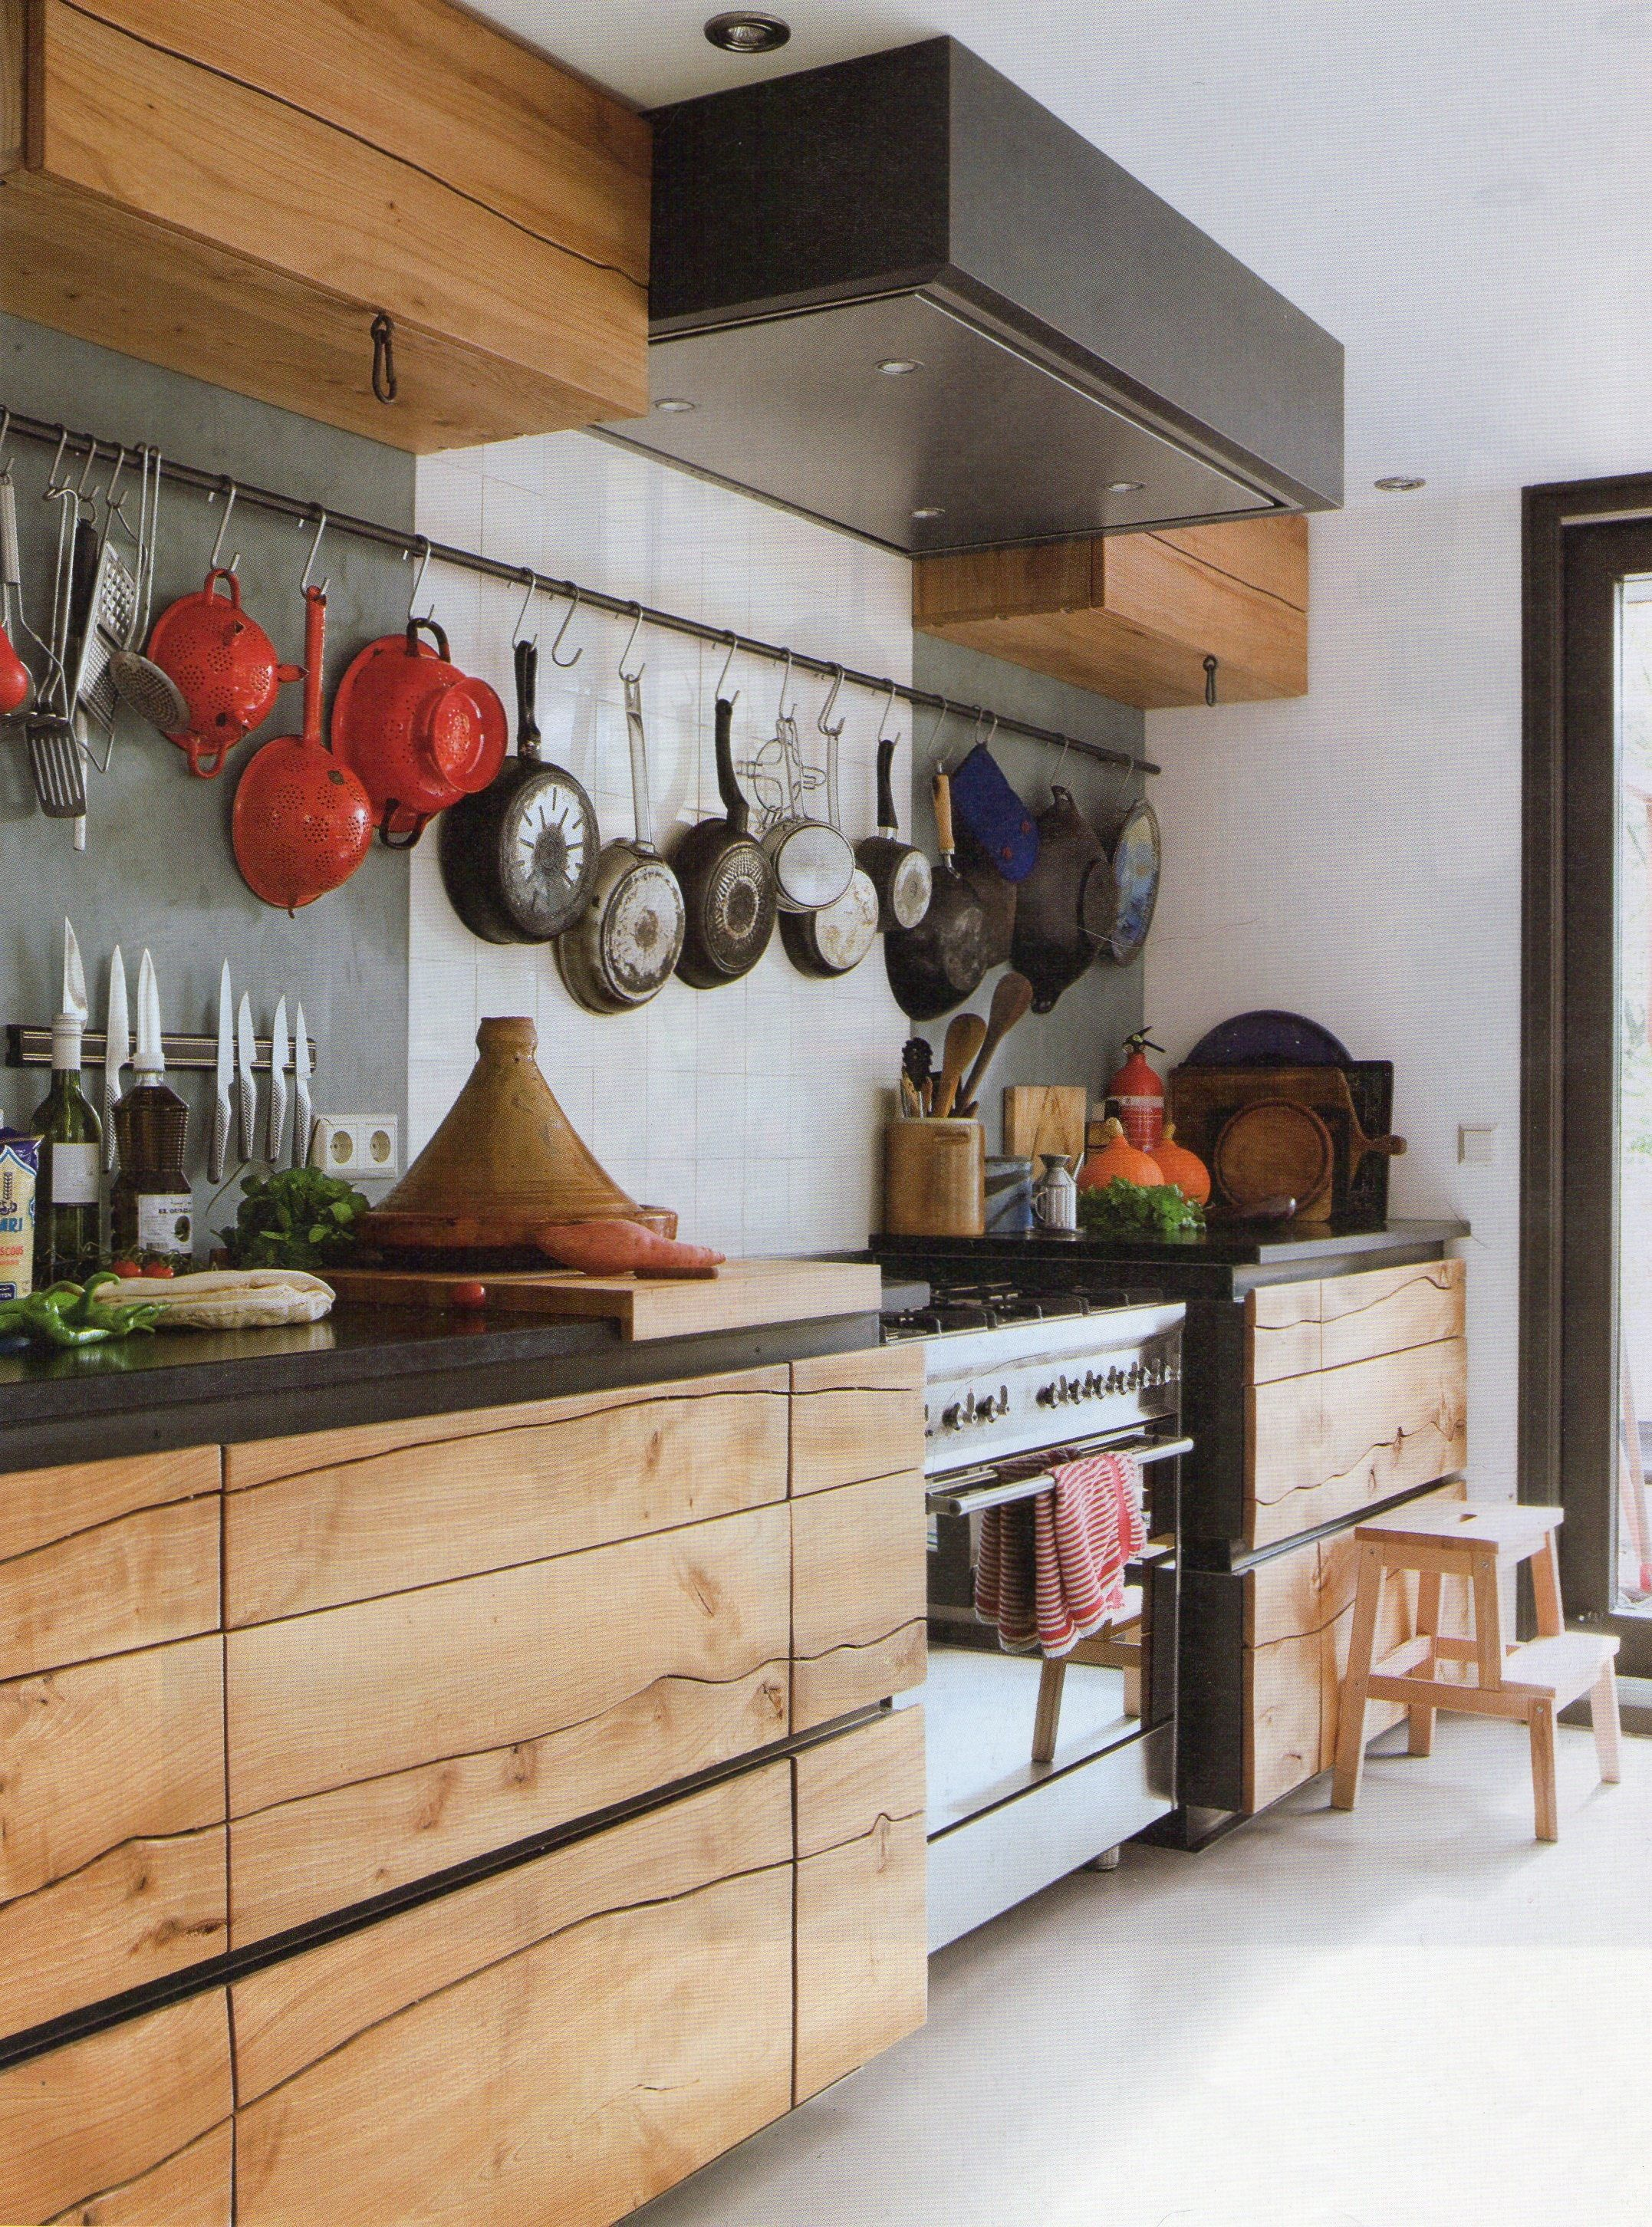 Wood Kitchen Eclectic Kitchen Kitchen Interior Kitchen Design